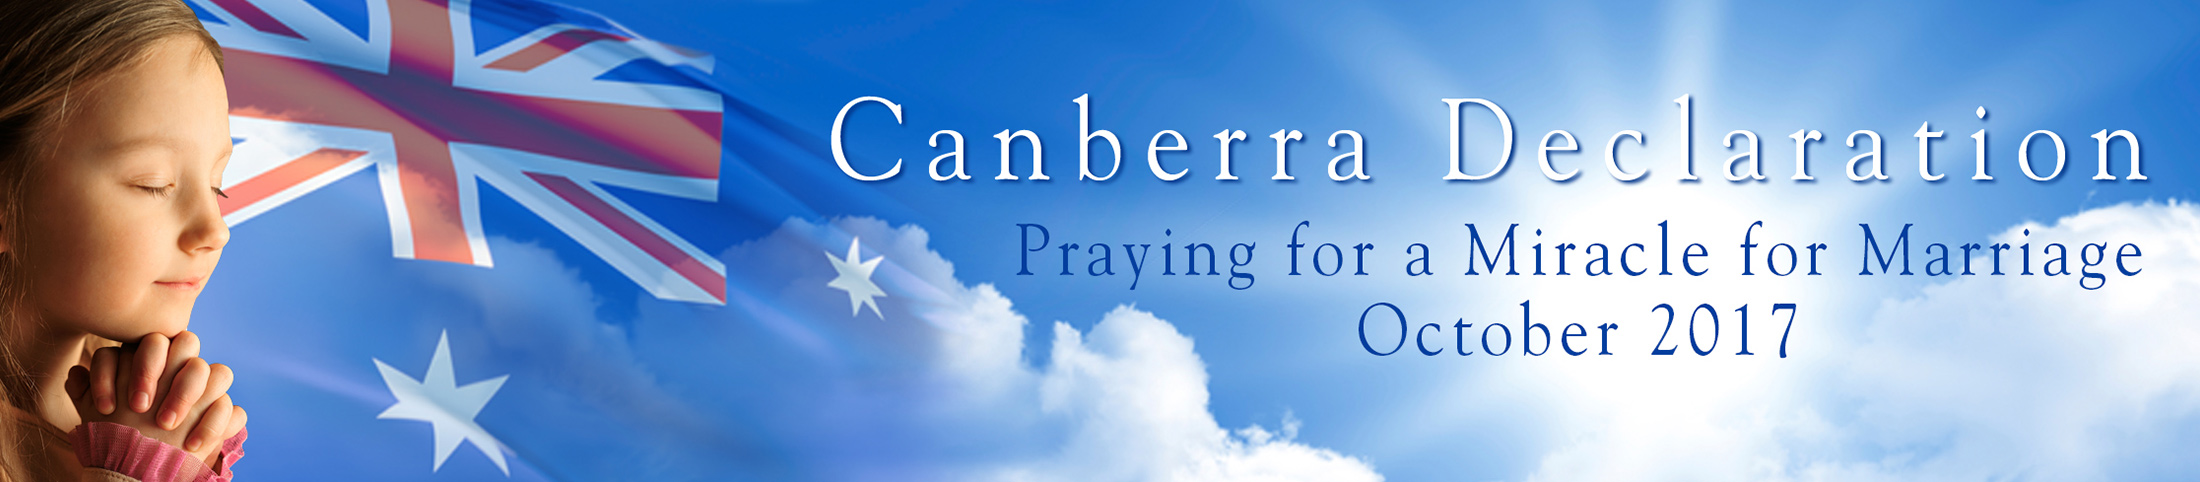 Canberra Declaration Devotionals